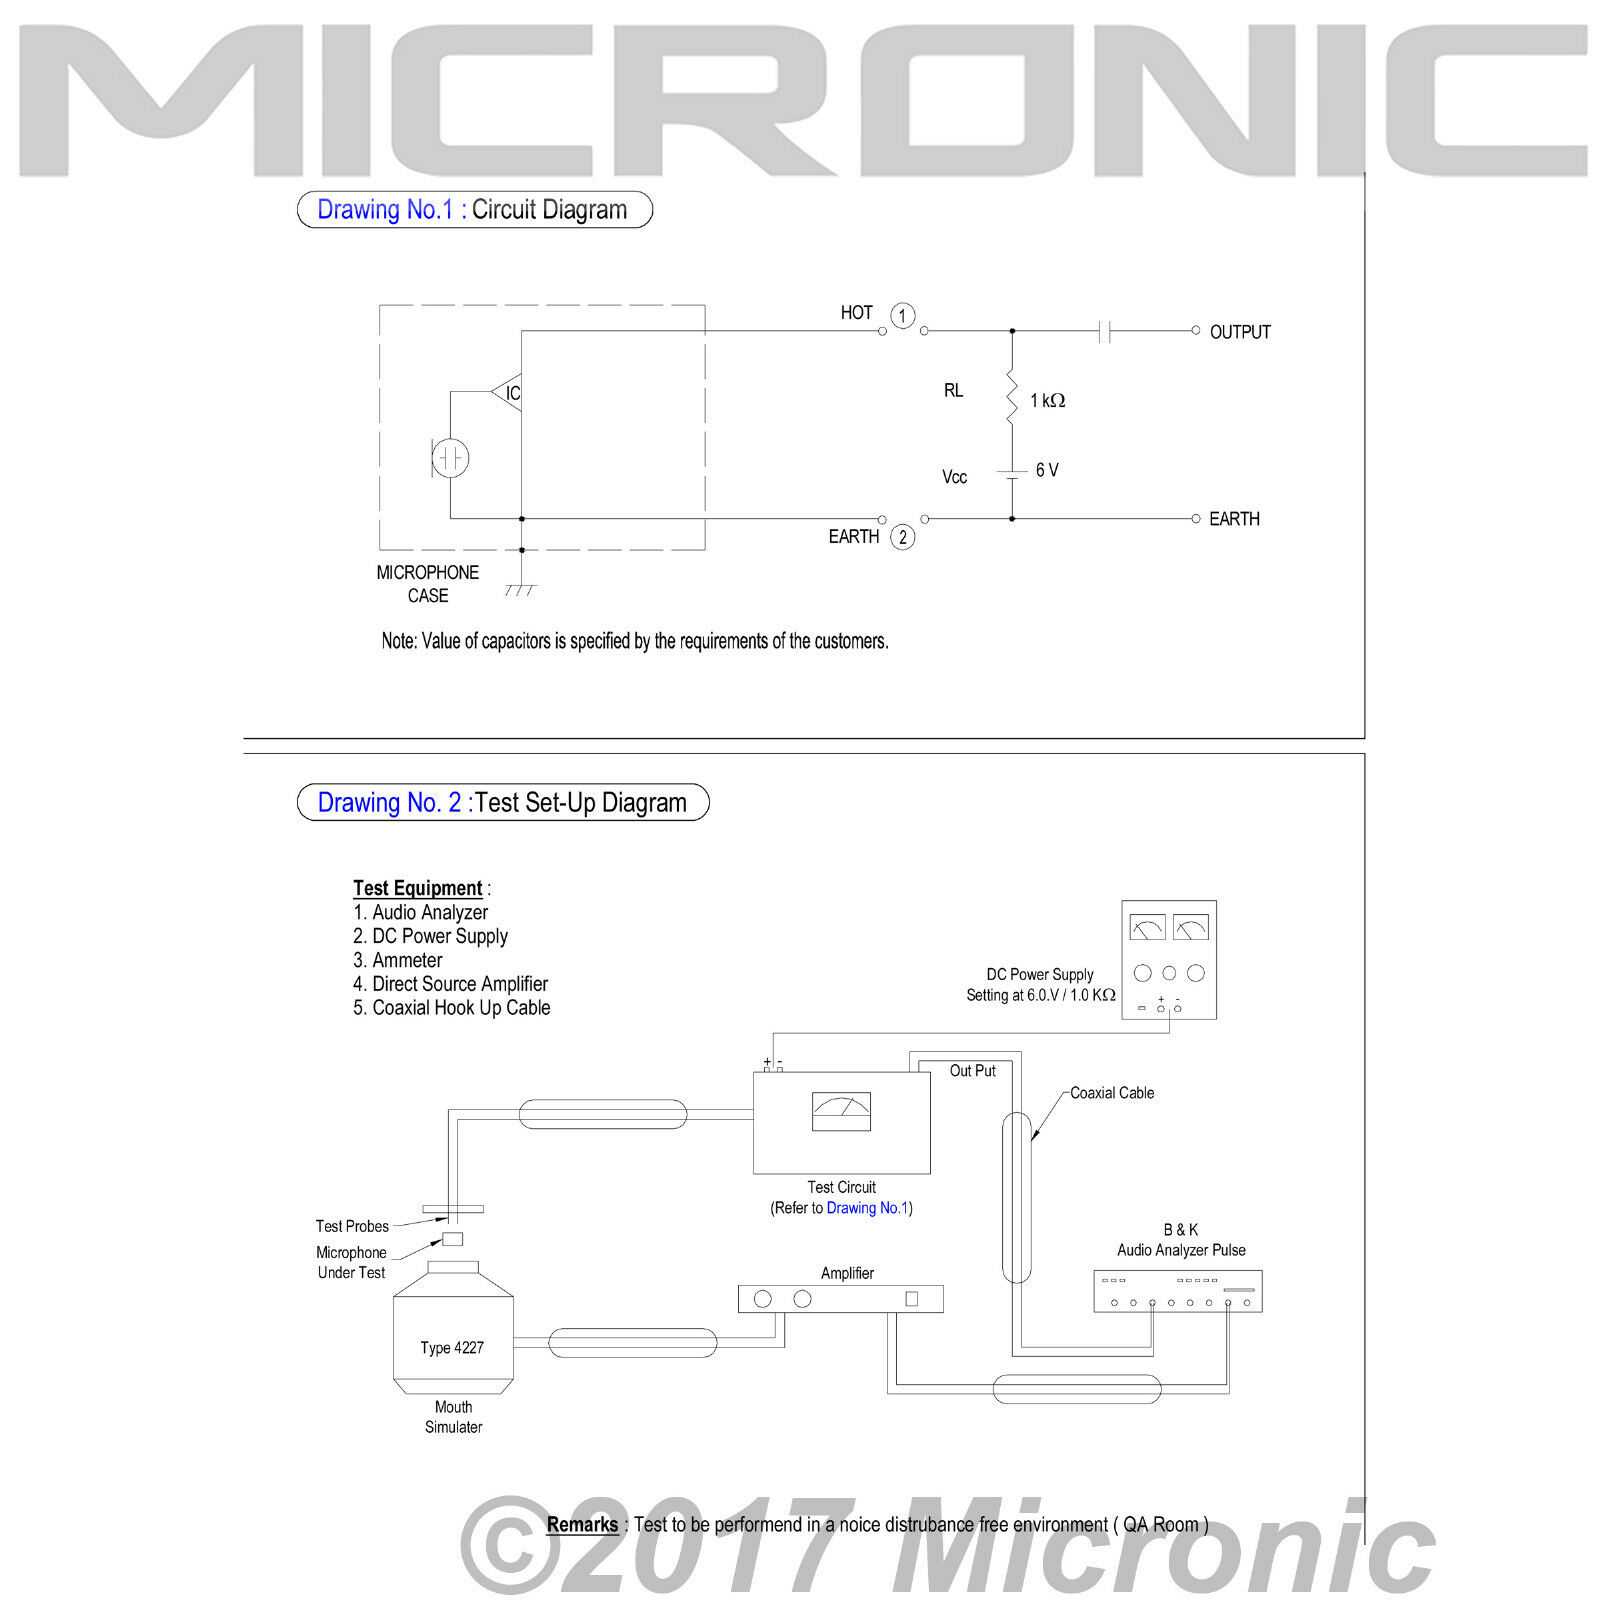 Electret Condenser Microphone Circuit Diagram Nemetas Is The Schematic For Additionally Wiring Diagrams Source 5 Of 6 1x Primo Em8003f Omnidirectional